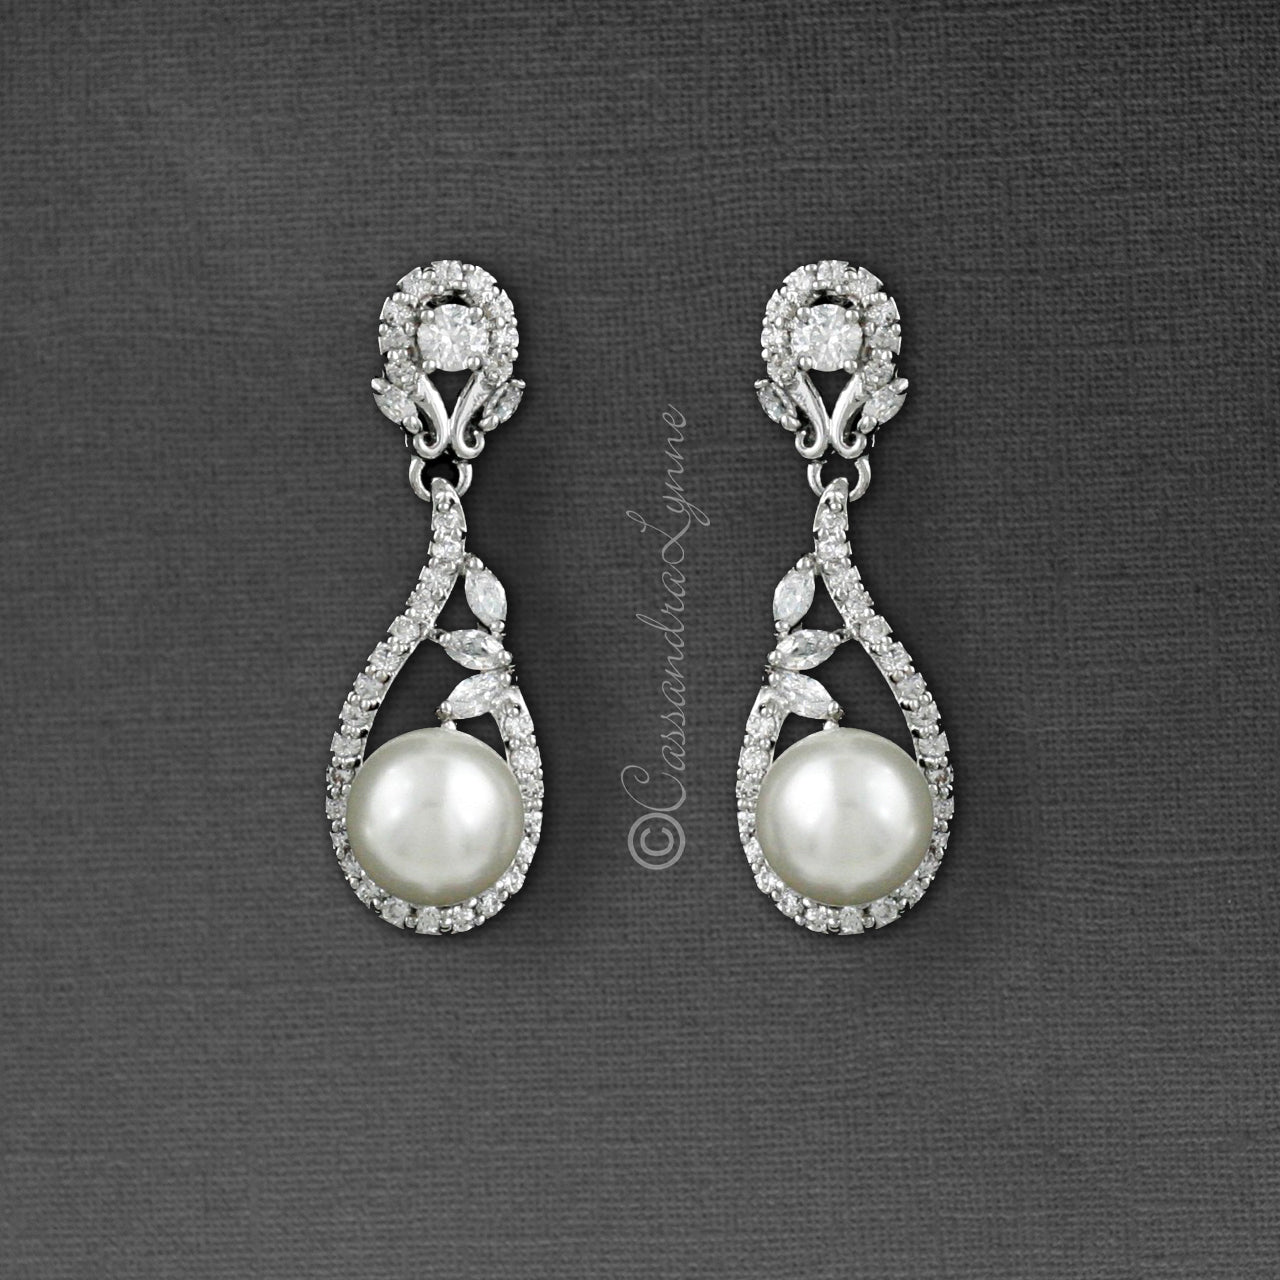 CZ Drop Earrings with Pearls for the Bride